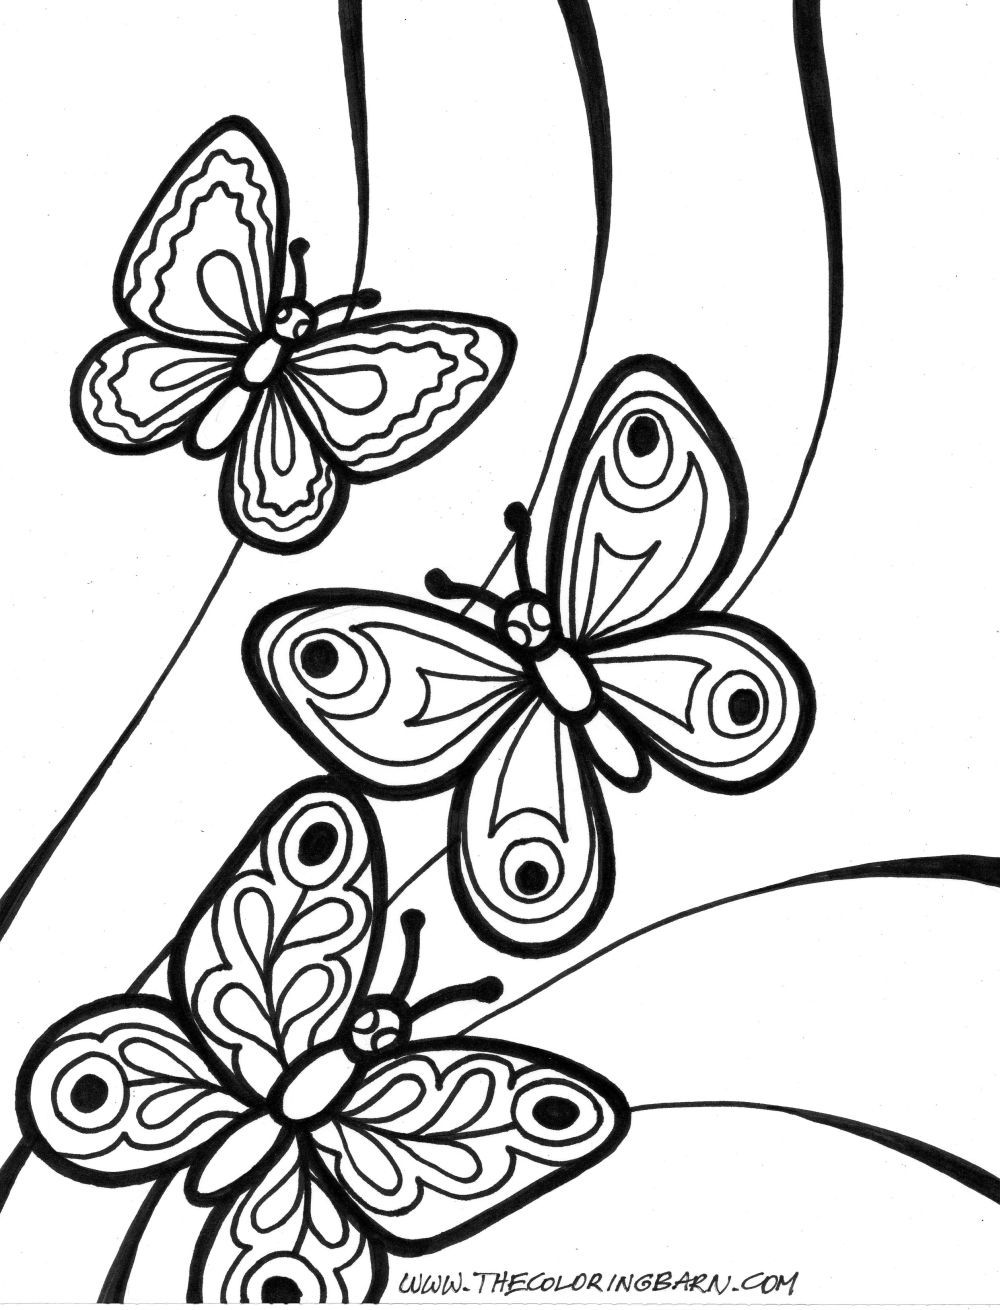 Free butterfly coloring pages - 17 Best Images About Butterfly Coloring Pages On Pinterest